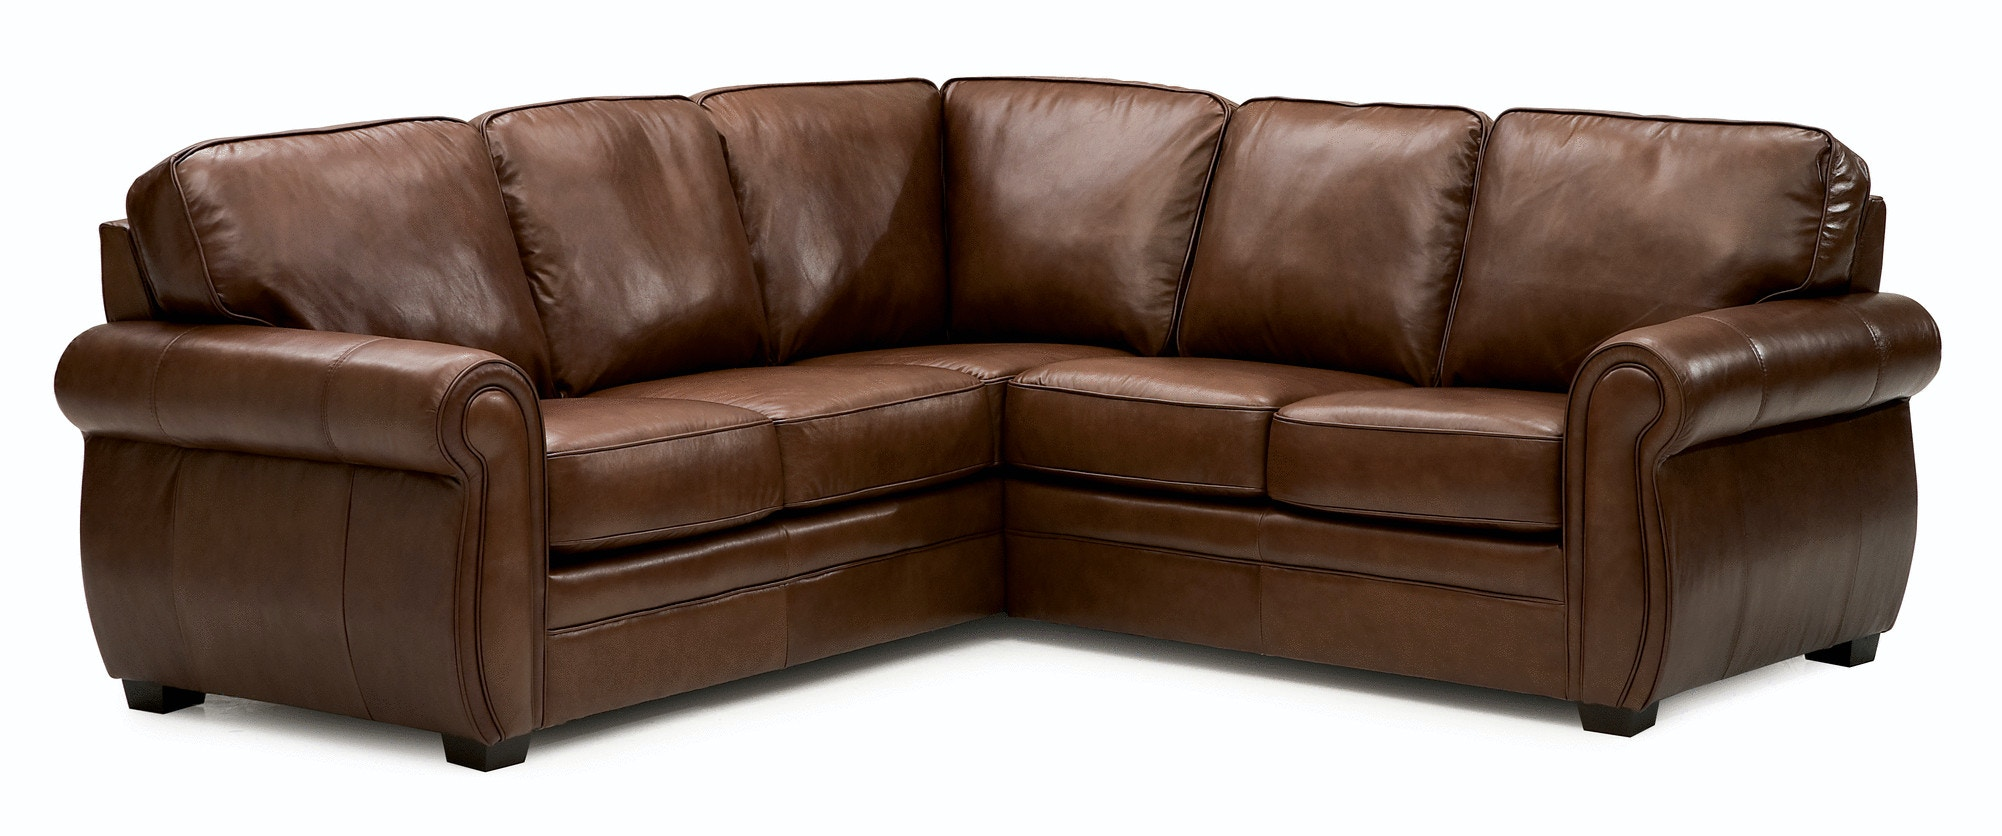 Palliser Furniture Viceroy Sectional 77492 Sectional  sc 1 st  Hamiltons Sofa Gallery : palliser leather sectional - Sectionals, Sofas & Couches